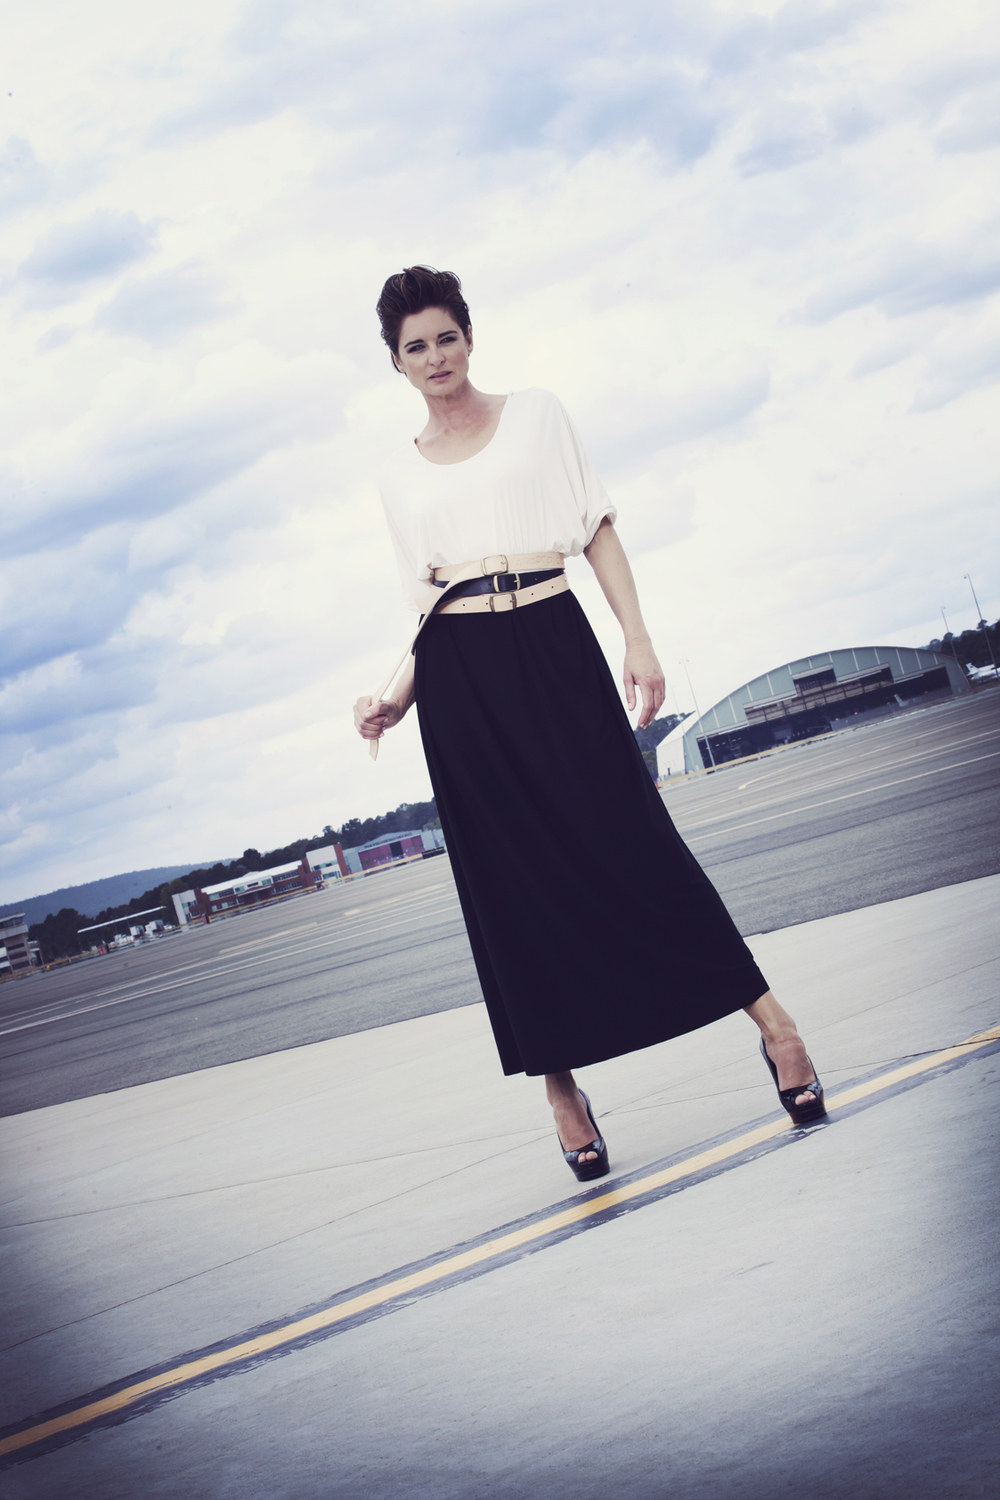 Photo: Leighton Hutchinson | Model: Belinda RIding | Location: Canberra Airport